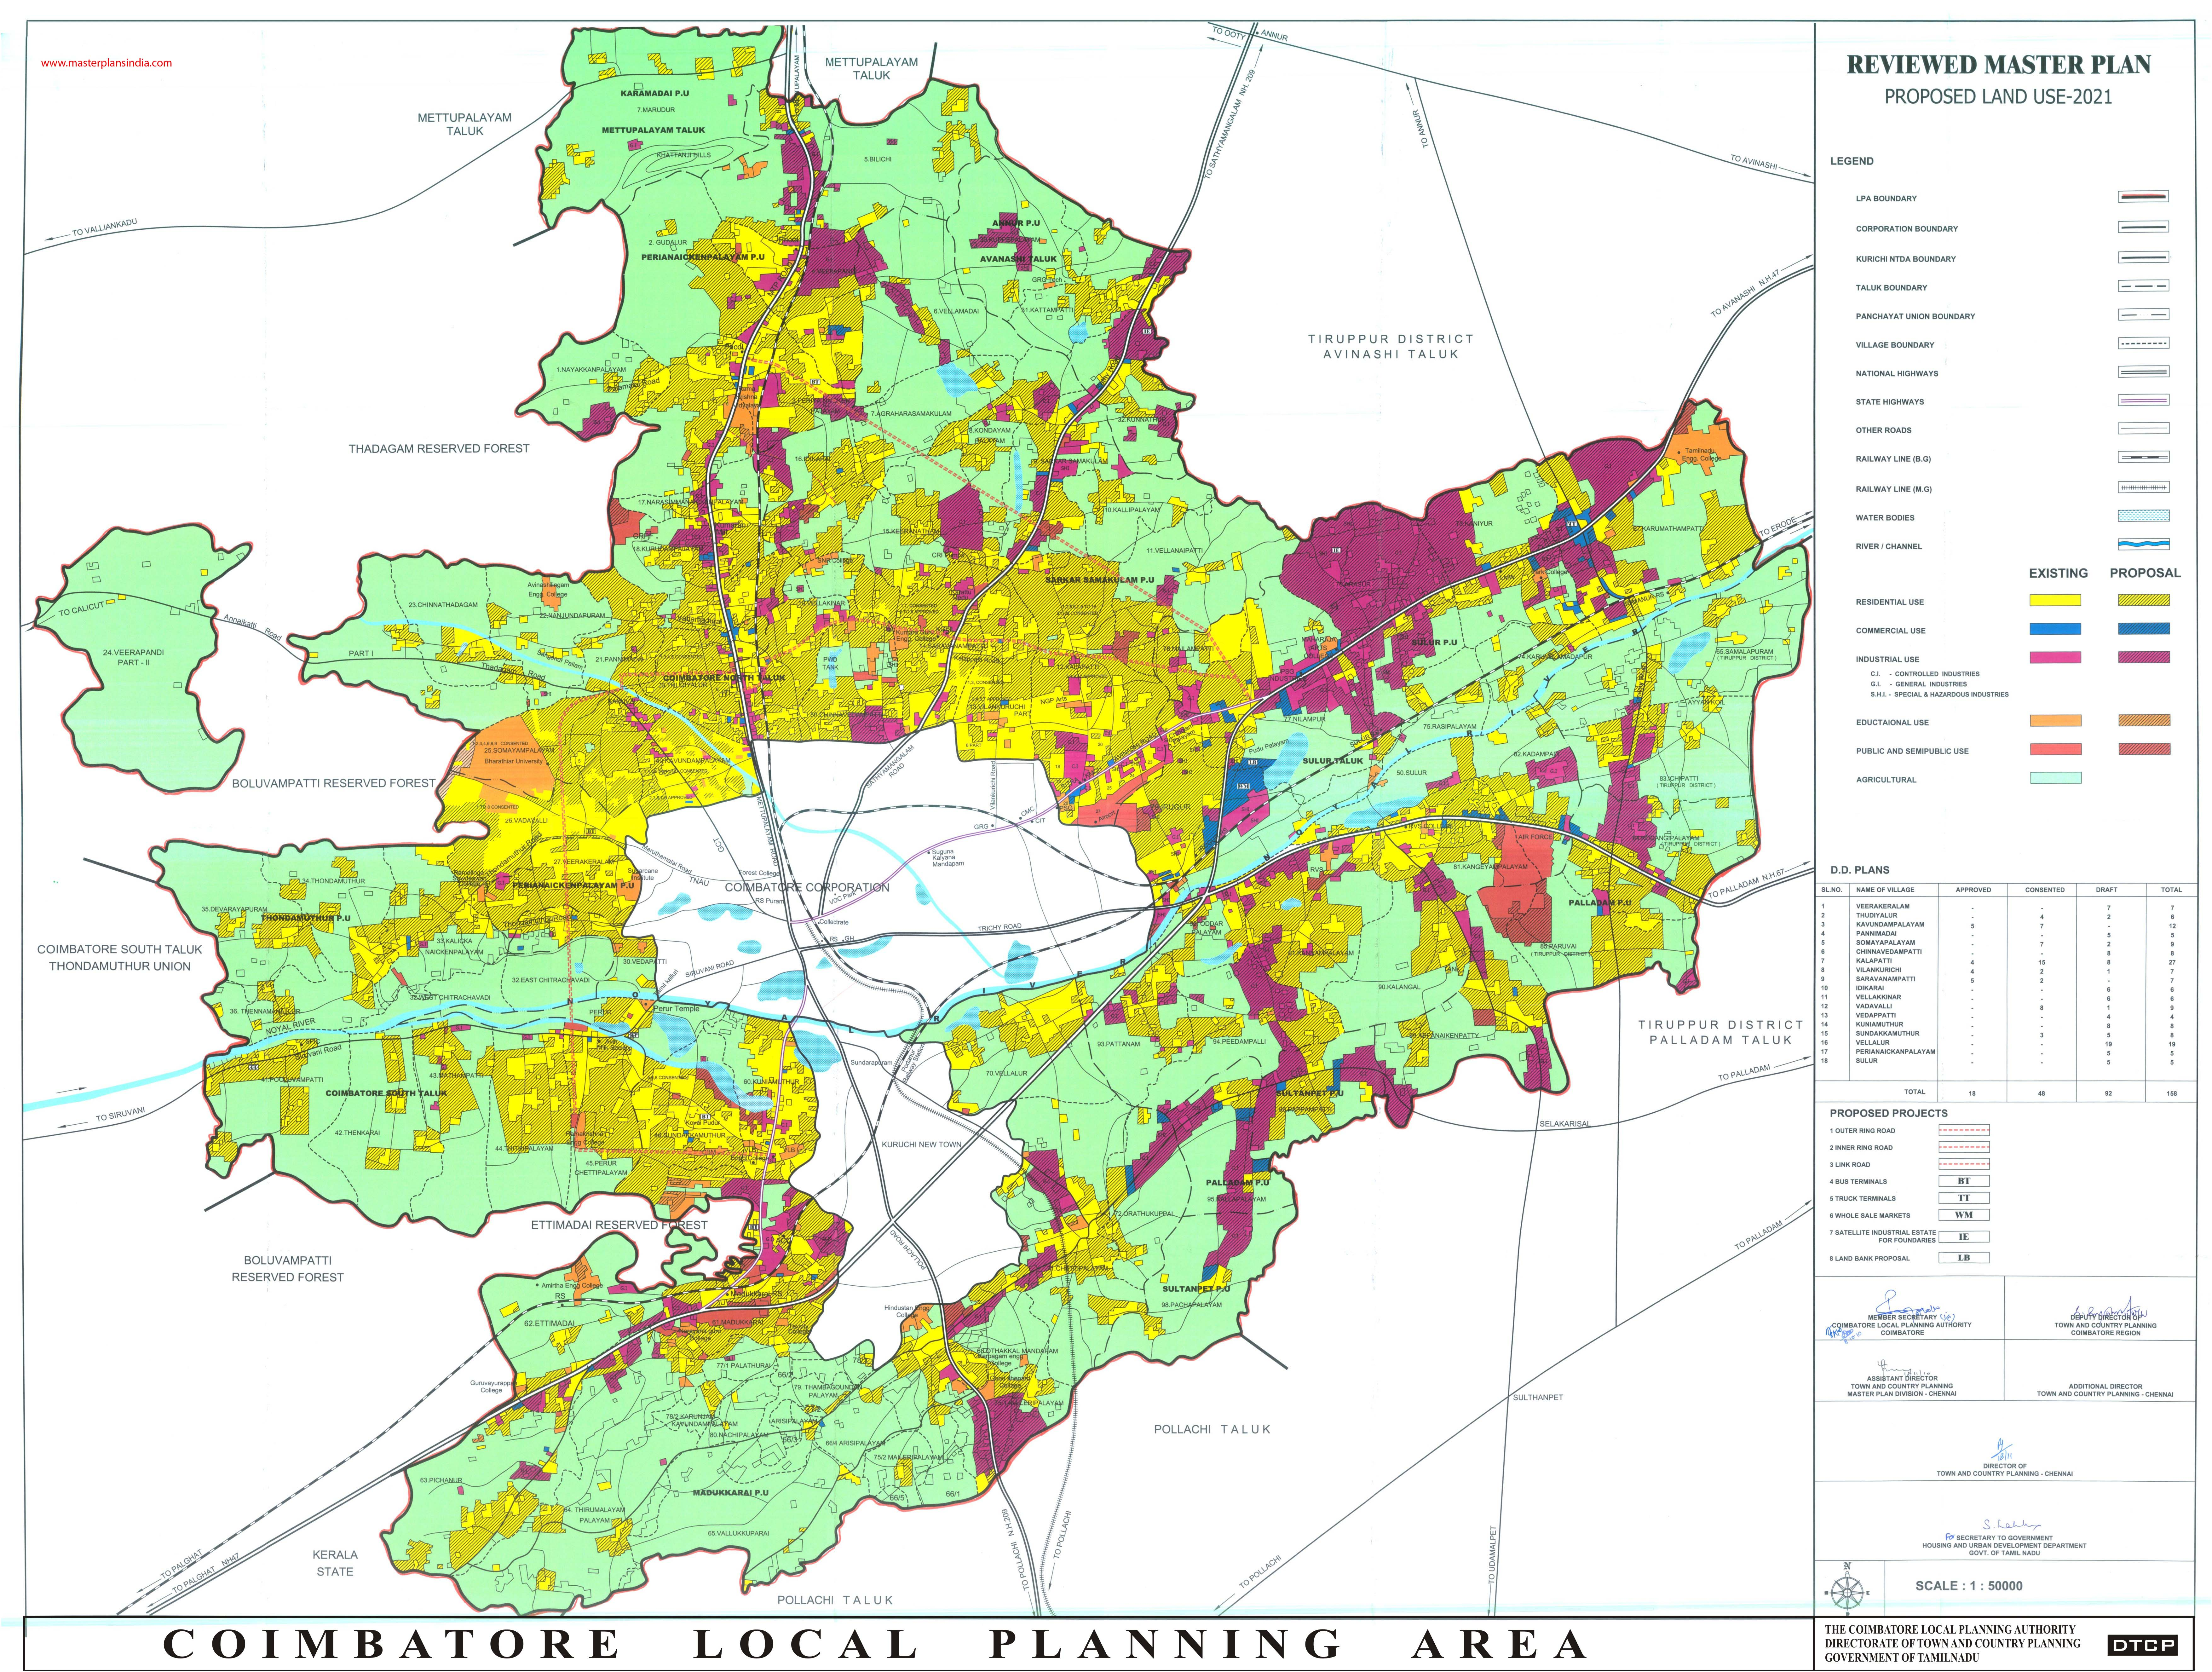 Coimbatore LPA Master Plan 2021 Map PDF Download - Master Plans India